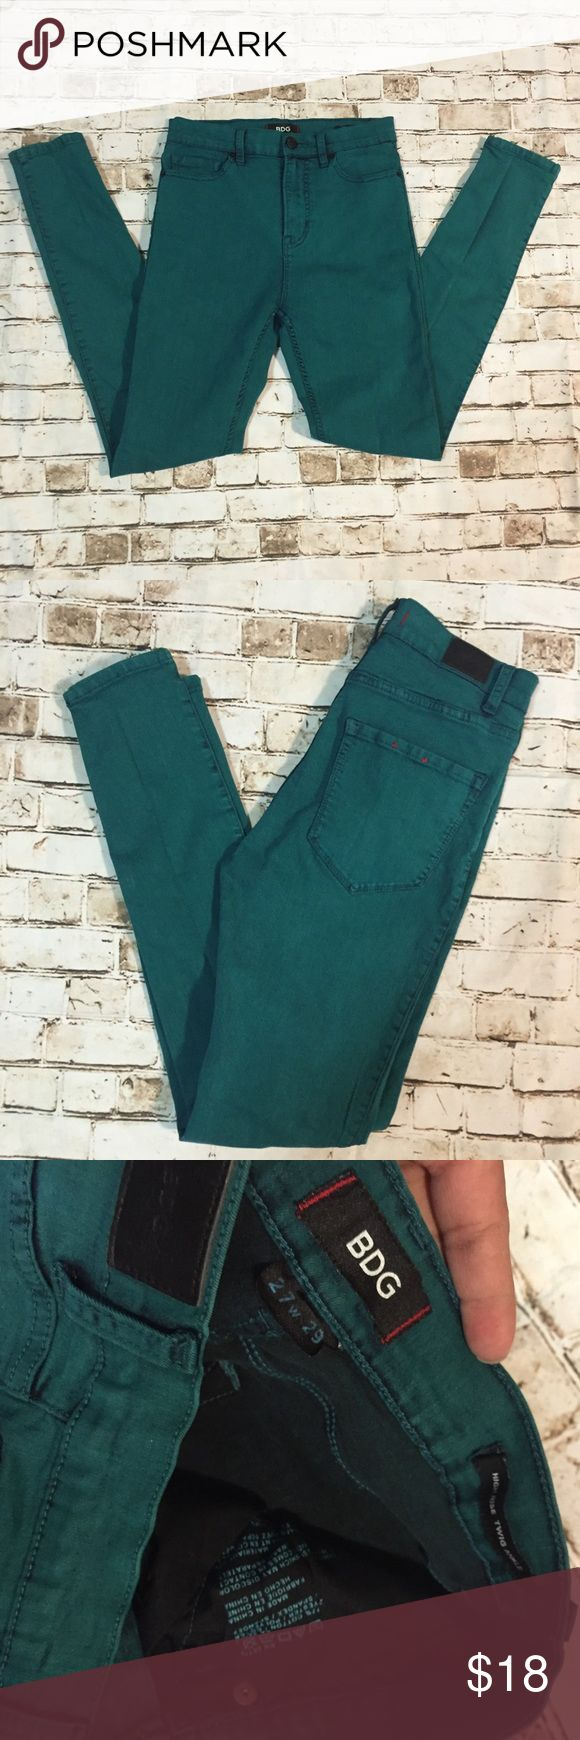 """BDG Sz 27 high rise twig ankle teal skinny jeans 29"""" inseam! Great condition Urban Outfitters Jeans Ankle & Cropped"""